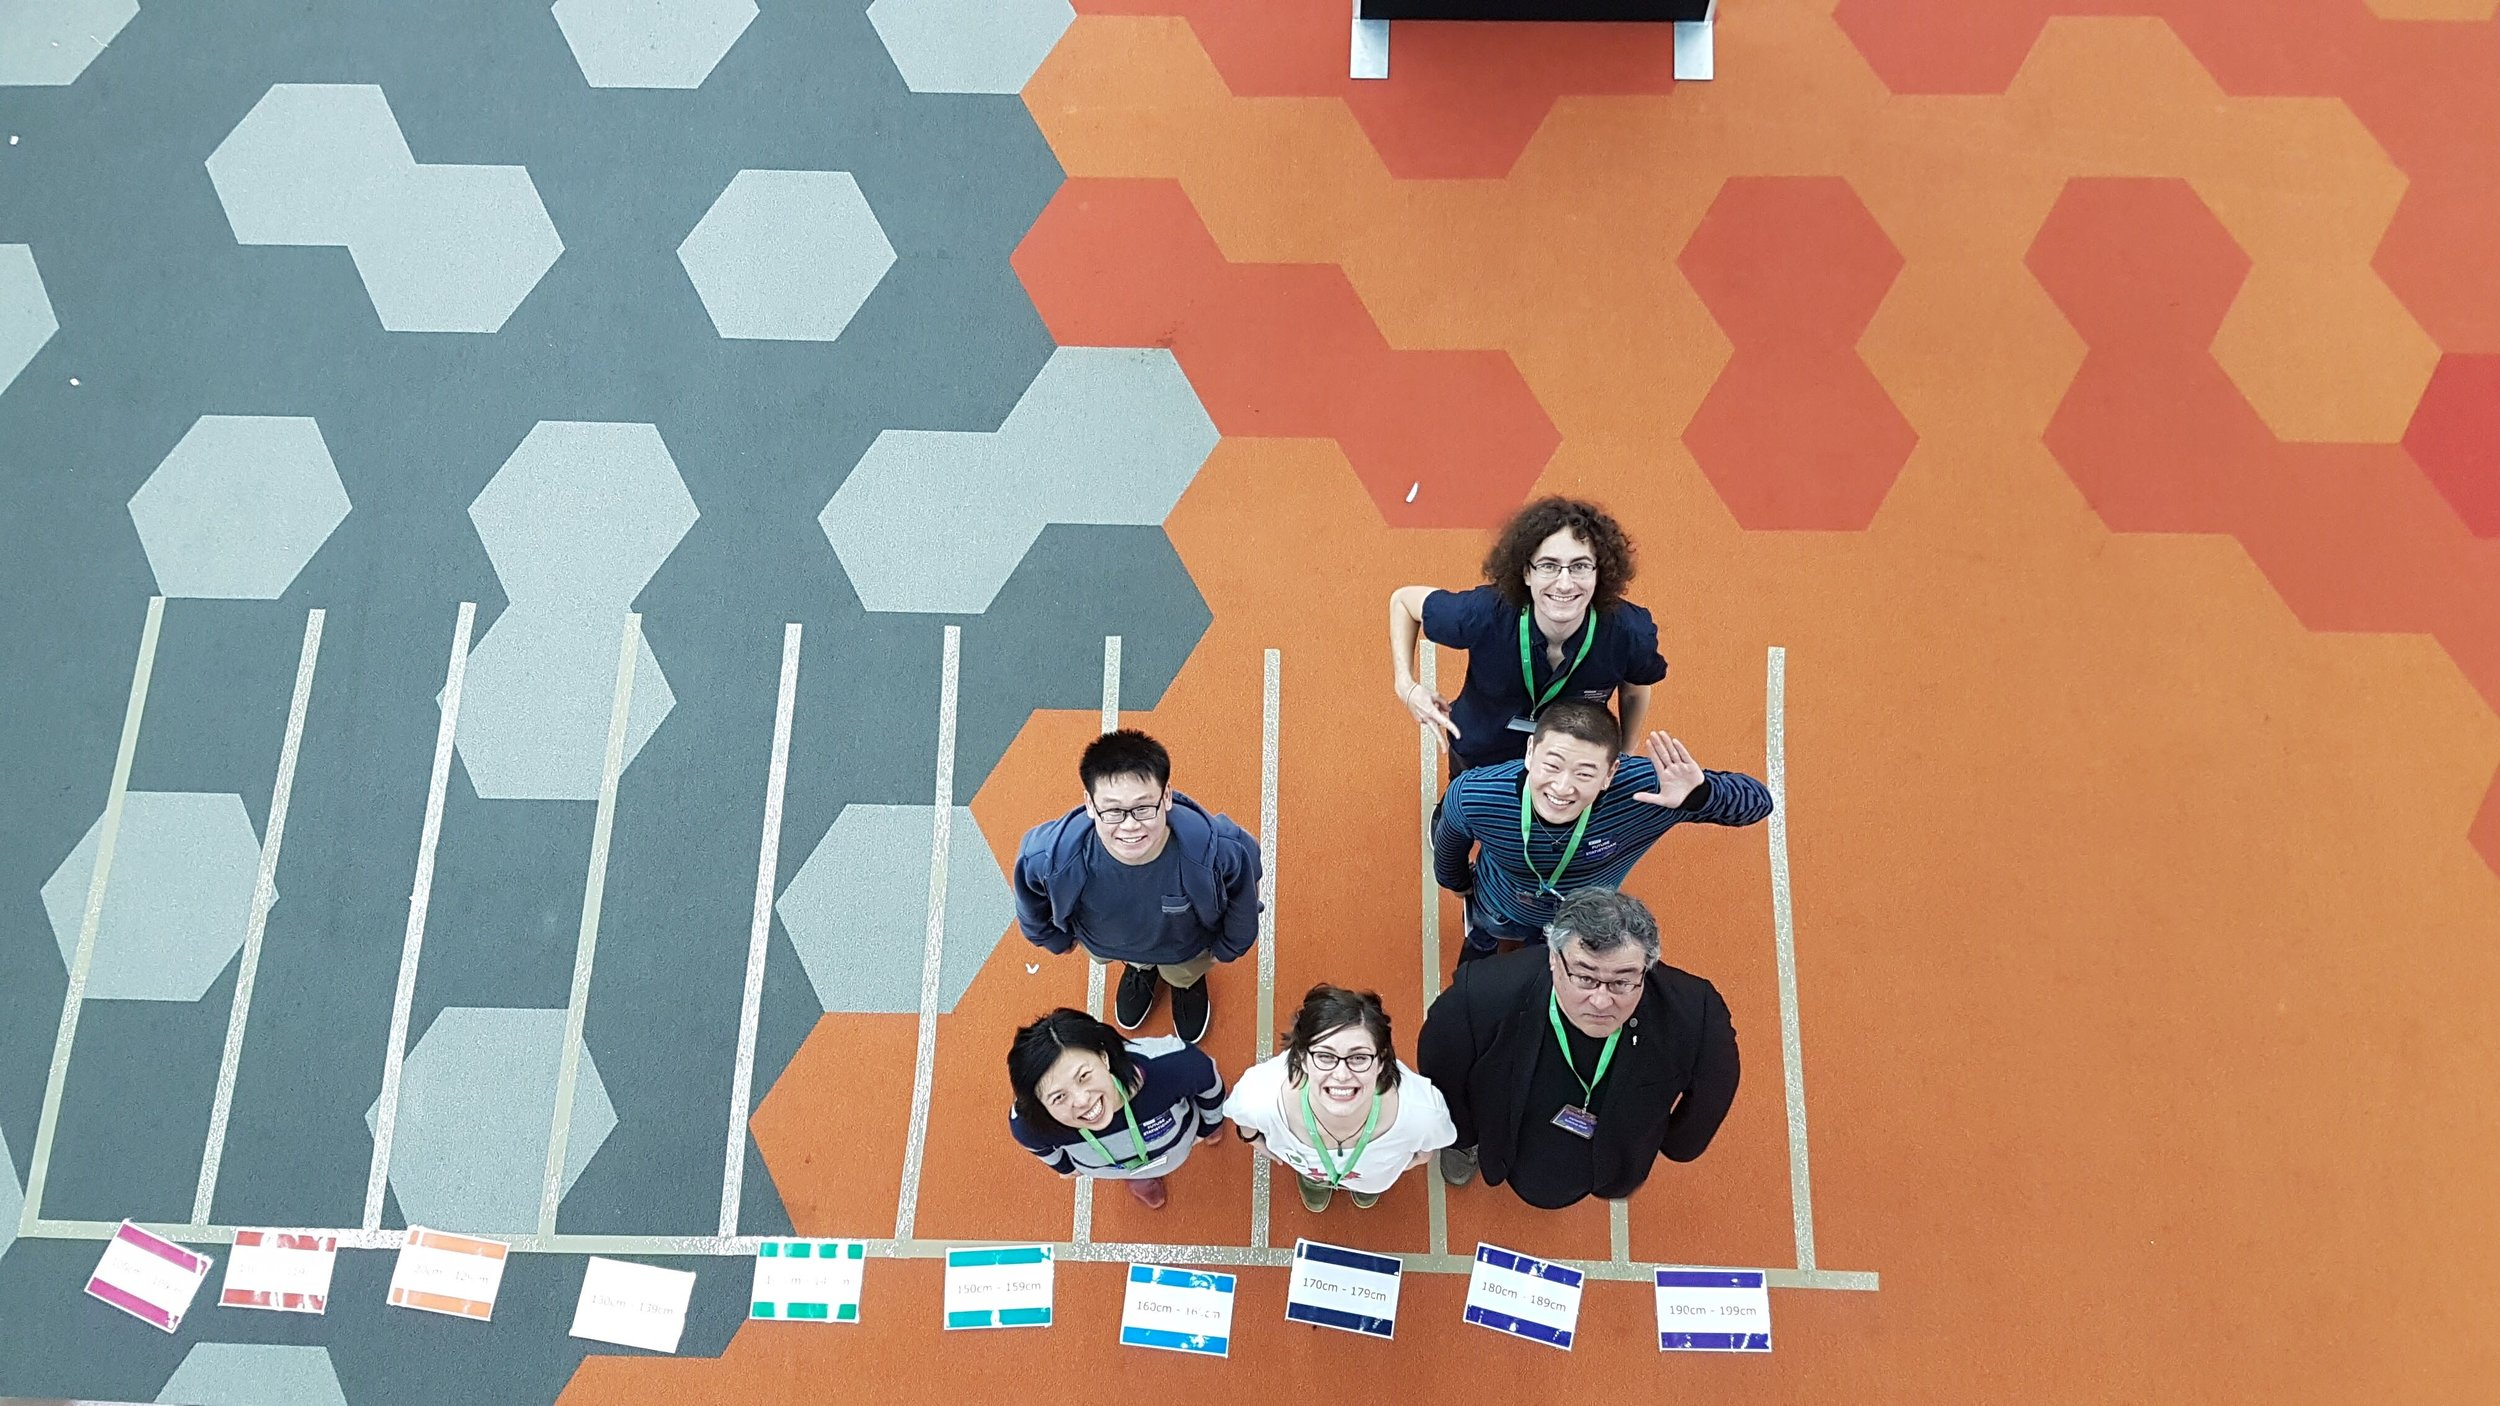 Liza (in her Statistical Bouquet t-shirt) and team form a human histogram at the Incredible Science event